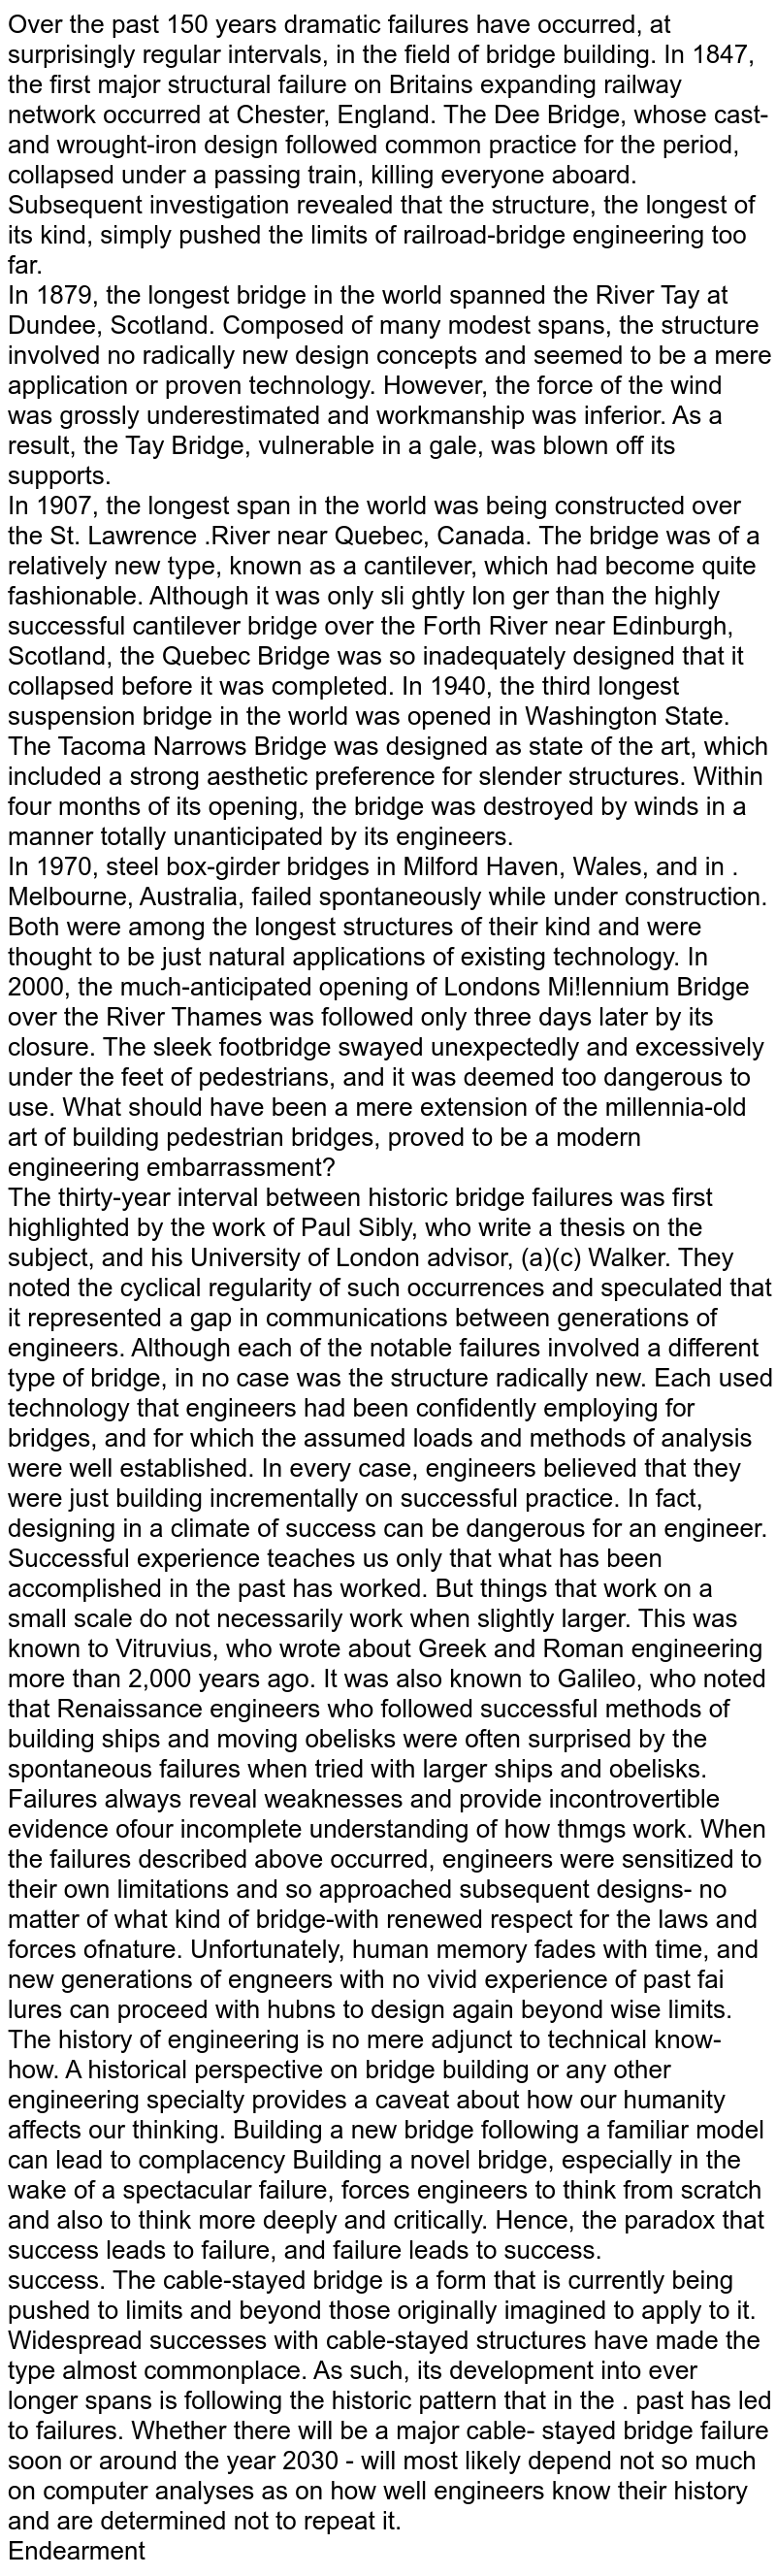 Over the past 150 years dramatic failures have occurred, at surprisingly regular intervals, in the field of bridge building. In 1847, the first major structural failure on Britain's expanding railway network occurred at Chester, England. The Dee Bridge, whose cast-and wrought-iron design followed common practice for the period, collapsed under a passing train, killing everyone aboard. Subsequent investigation revealed that the structure, the longest of its kind, simply pushed the limits of railroad-bridge engineering too far.  <br> In 1879, the longest bridge in the world spanned the River Tay at Dundee, Scotland. Composed of many modest spans, the structure involved no radically new design concepts and seemed to be a mere application or proven technology. However, the force of the wind was grossly underestimated and workmanship was inferior. As a result, the Tay Bridge, vulnerable in a gale, was blown off its supports. <br> In 1907, the longest span in the world was being constructed over the St. Lawrence .River near Quebec, Canada. The bridge was of a relatively new type, known as a cantilever, which had become quite fashionable. Although it was only sli ghtly lon ger than the highly successful cantilever bridge over the Forth River near Edinburgh, Scotland, the Quebec Bridge was so inadequately designed that it collapsed before it was completed. In 1940, the third longest suspension bridge in the world was opened in Washington State. The Tacoma Narrows Bridge was designed as state of the art, which included a strong aesthetic preference for slender structures. Within four months of its opening, the bridge was destroyed by winds in a manner totally unanticipated by its engineers. <br> In  1970, steel box-girder bridges in Milford Haven, Wales, and in . Melbourne, Australia, failed spontaneously while under construction. Both were among the longest structures of their kind and were thought to be just natural applications of existing technology. In 2000, the much-an